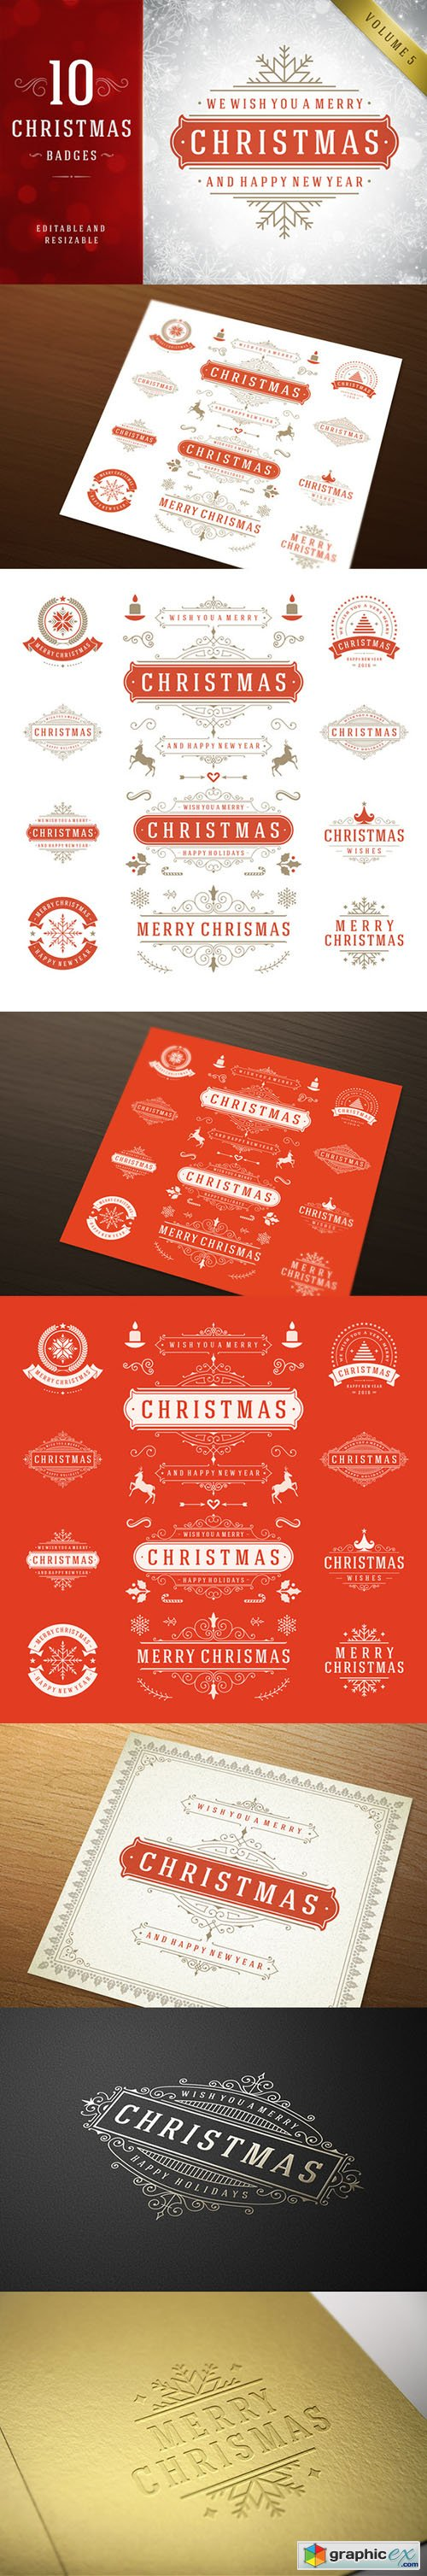 10 Christmas labels and badges 405730